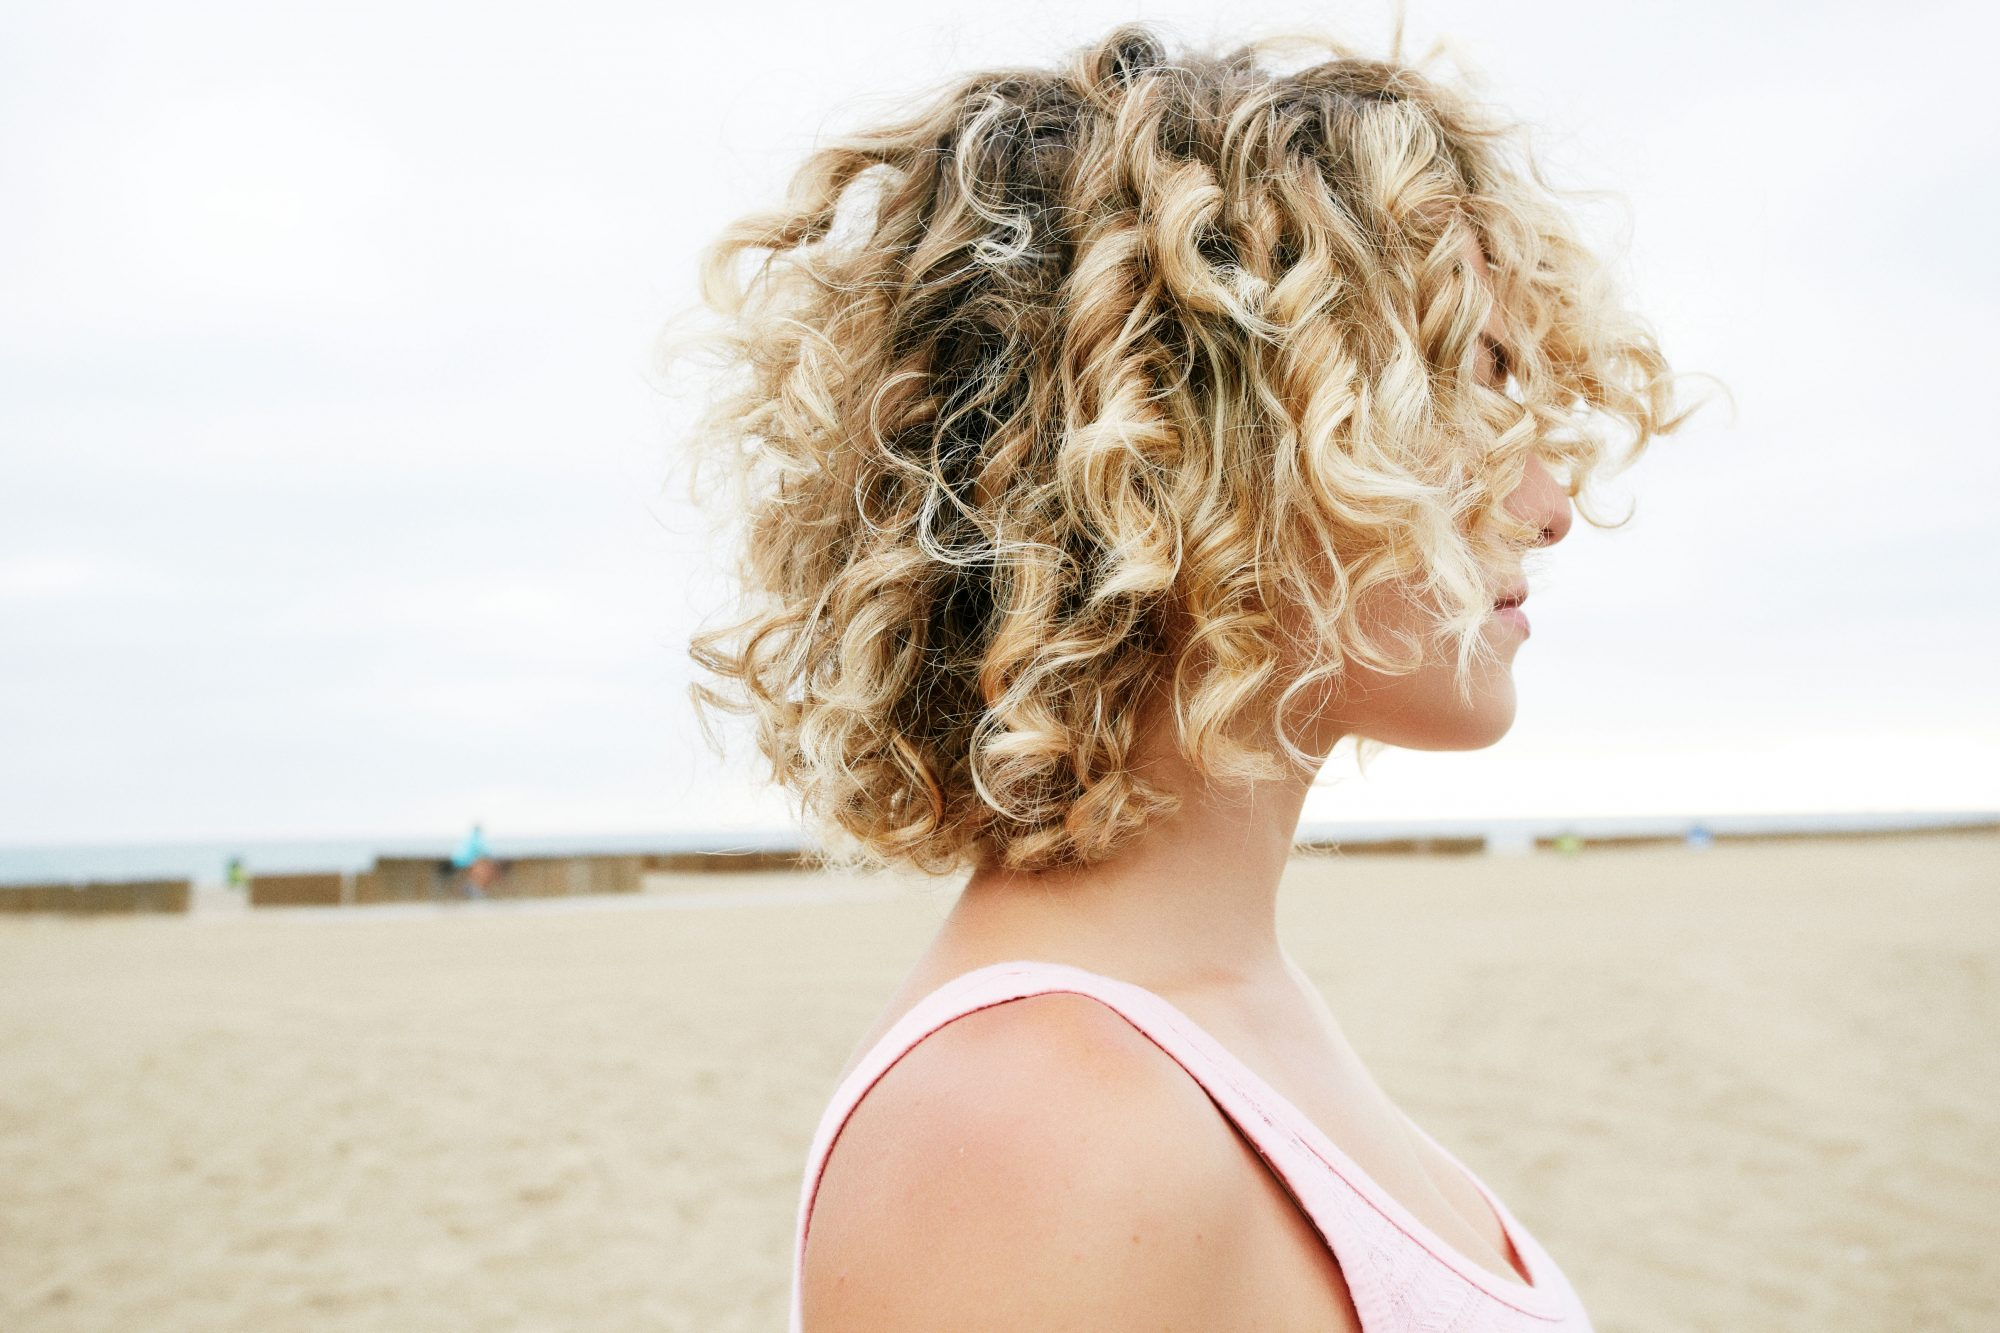 Woman with Blonde Curly Hair on the Beach